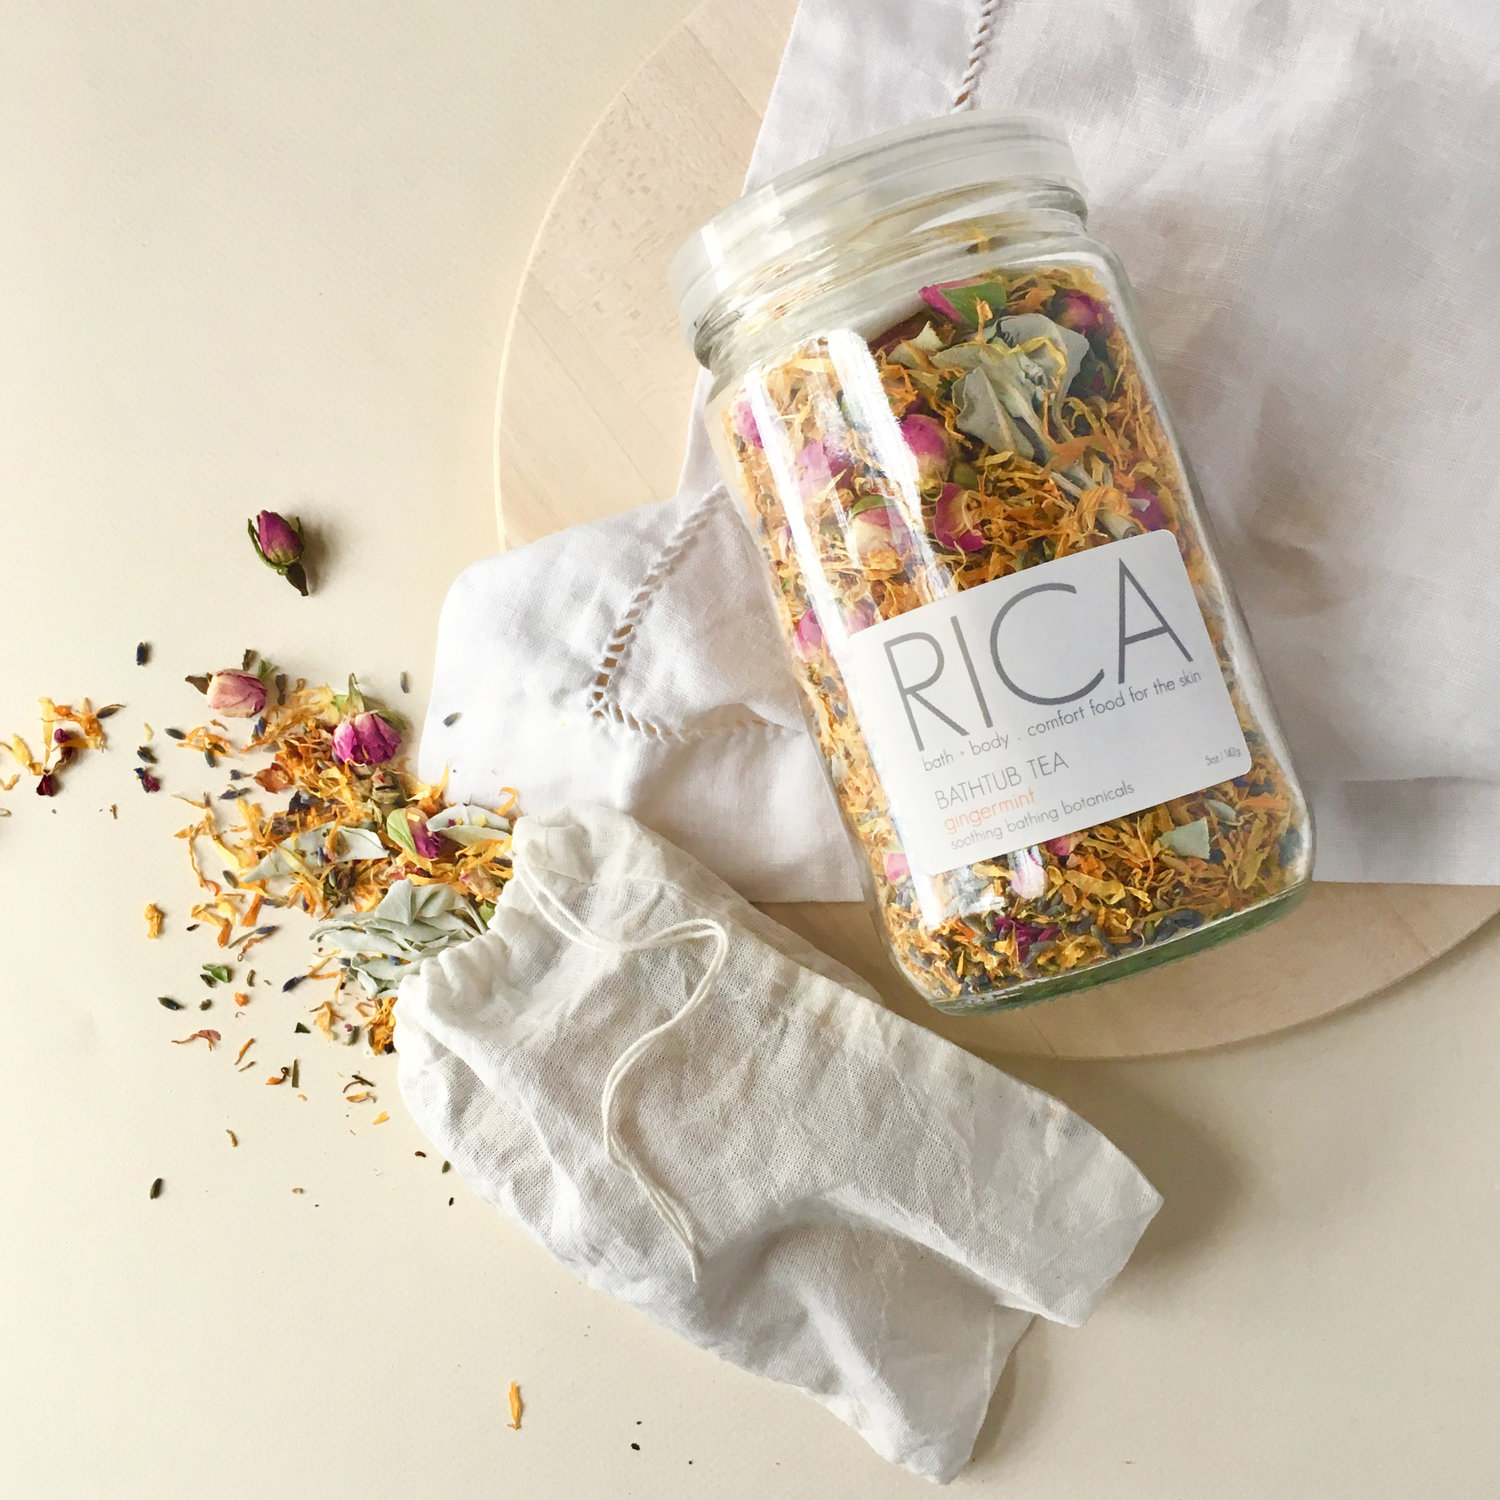 "RICA Bath and Beauty products are fresh-made to order in Brooklyn NY. Mixed ""farm to vanity"" style with organic and local grown ingredients (when possible) and sourced from the farms of Long Island's North Fork. Made without synthetic preservatives, colorants, parabens, sulfates or petroleum, everything is USA made in a Gowanus, Brooklyn studio housing their production facility.  RICA BODY"